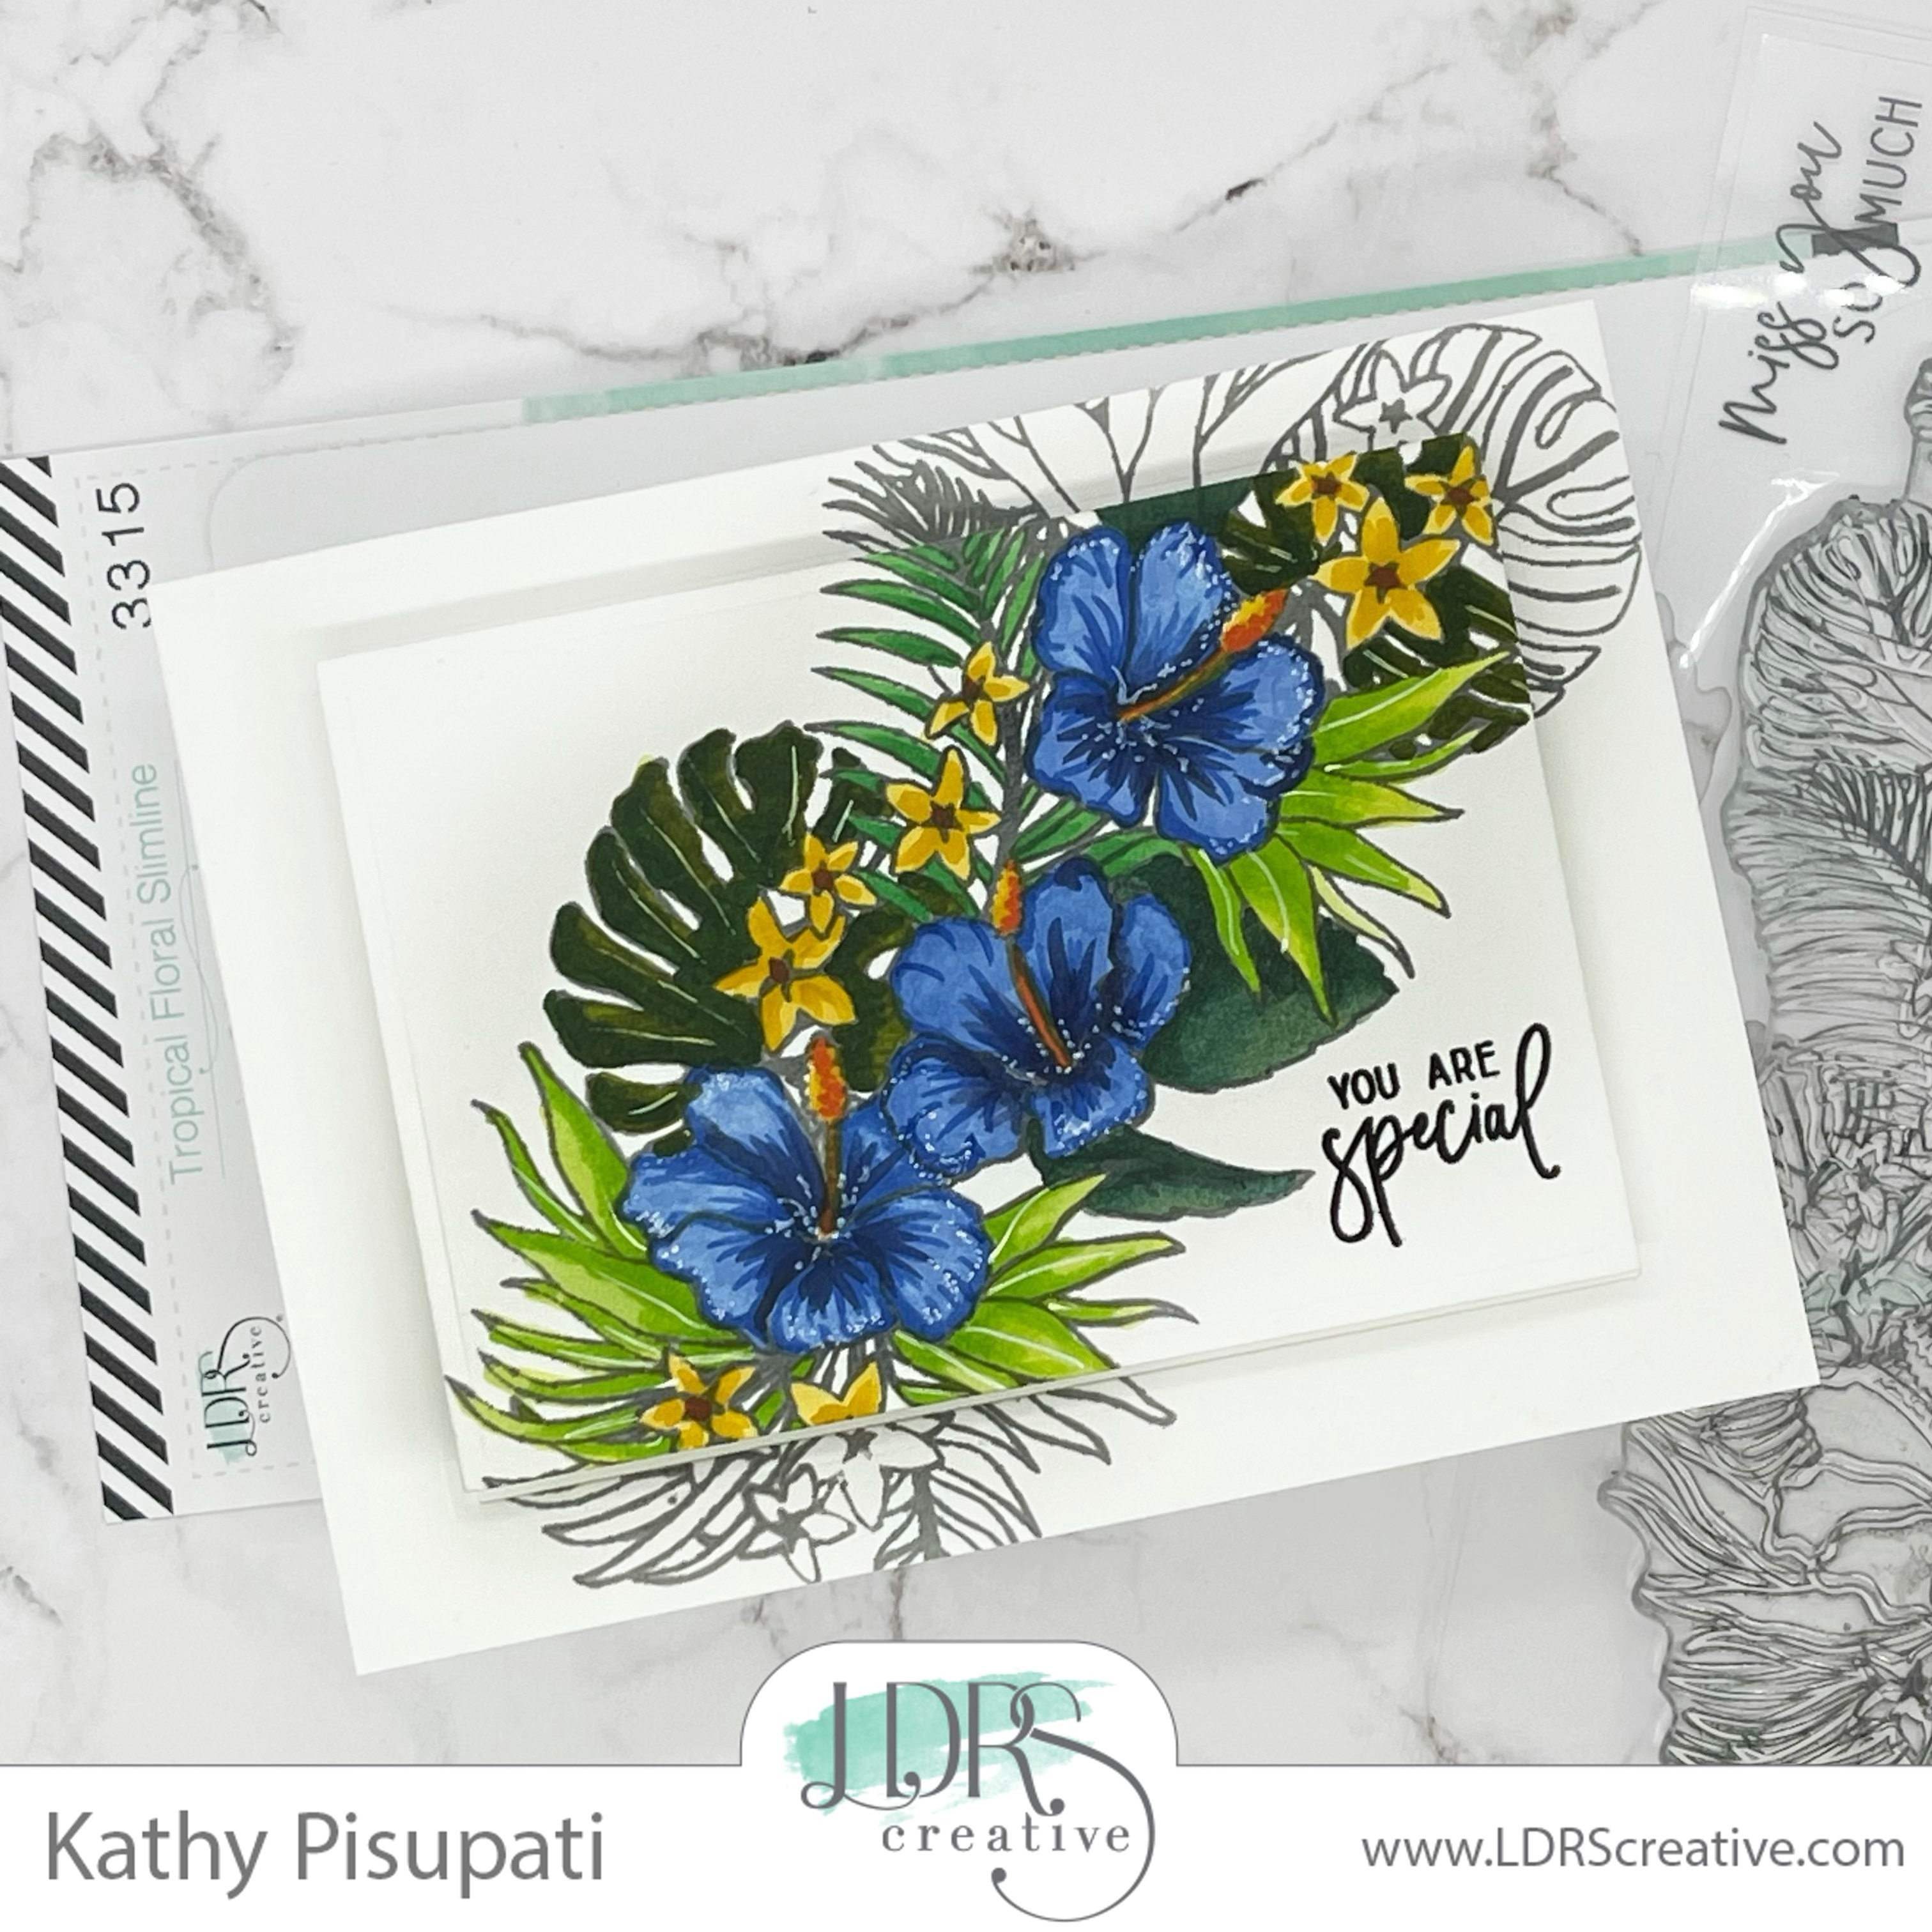 This image is to inspire card makers